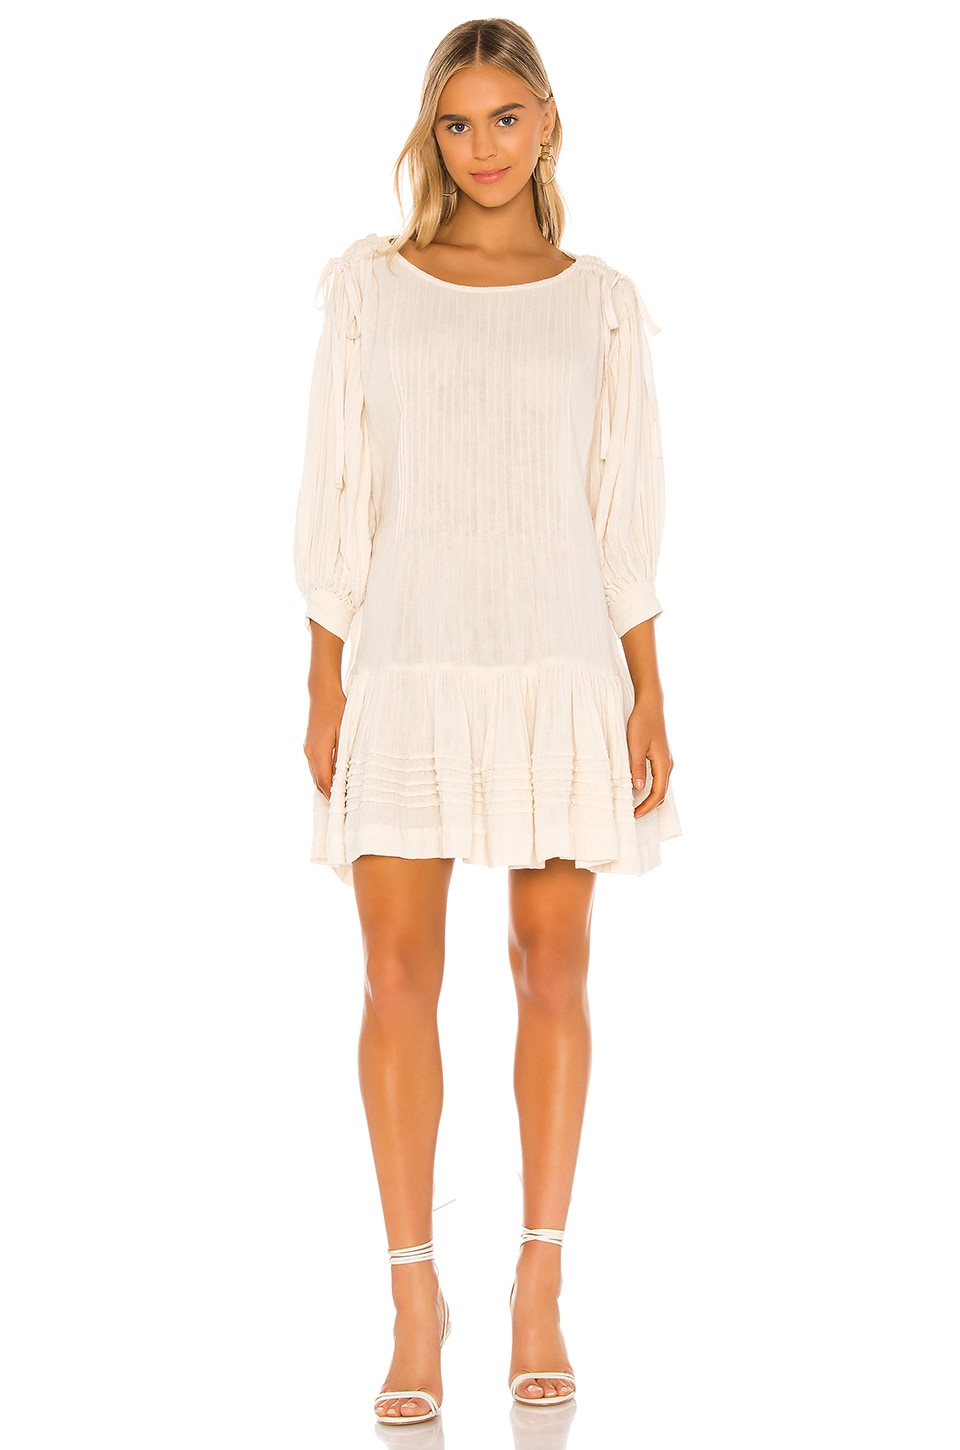 Free People Washed Ashore Mini Dress in Ivory